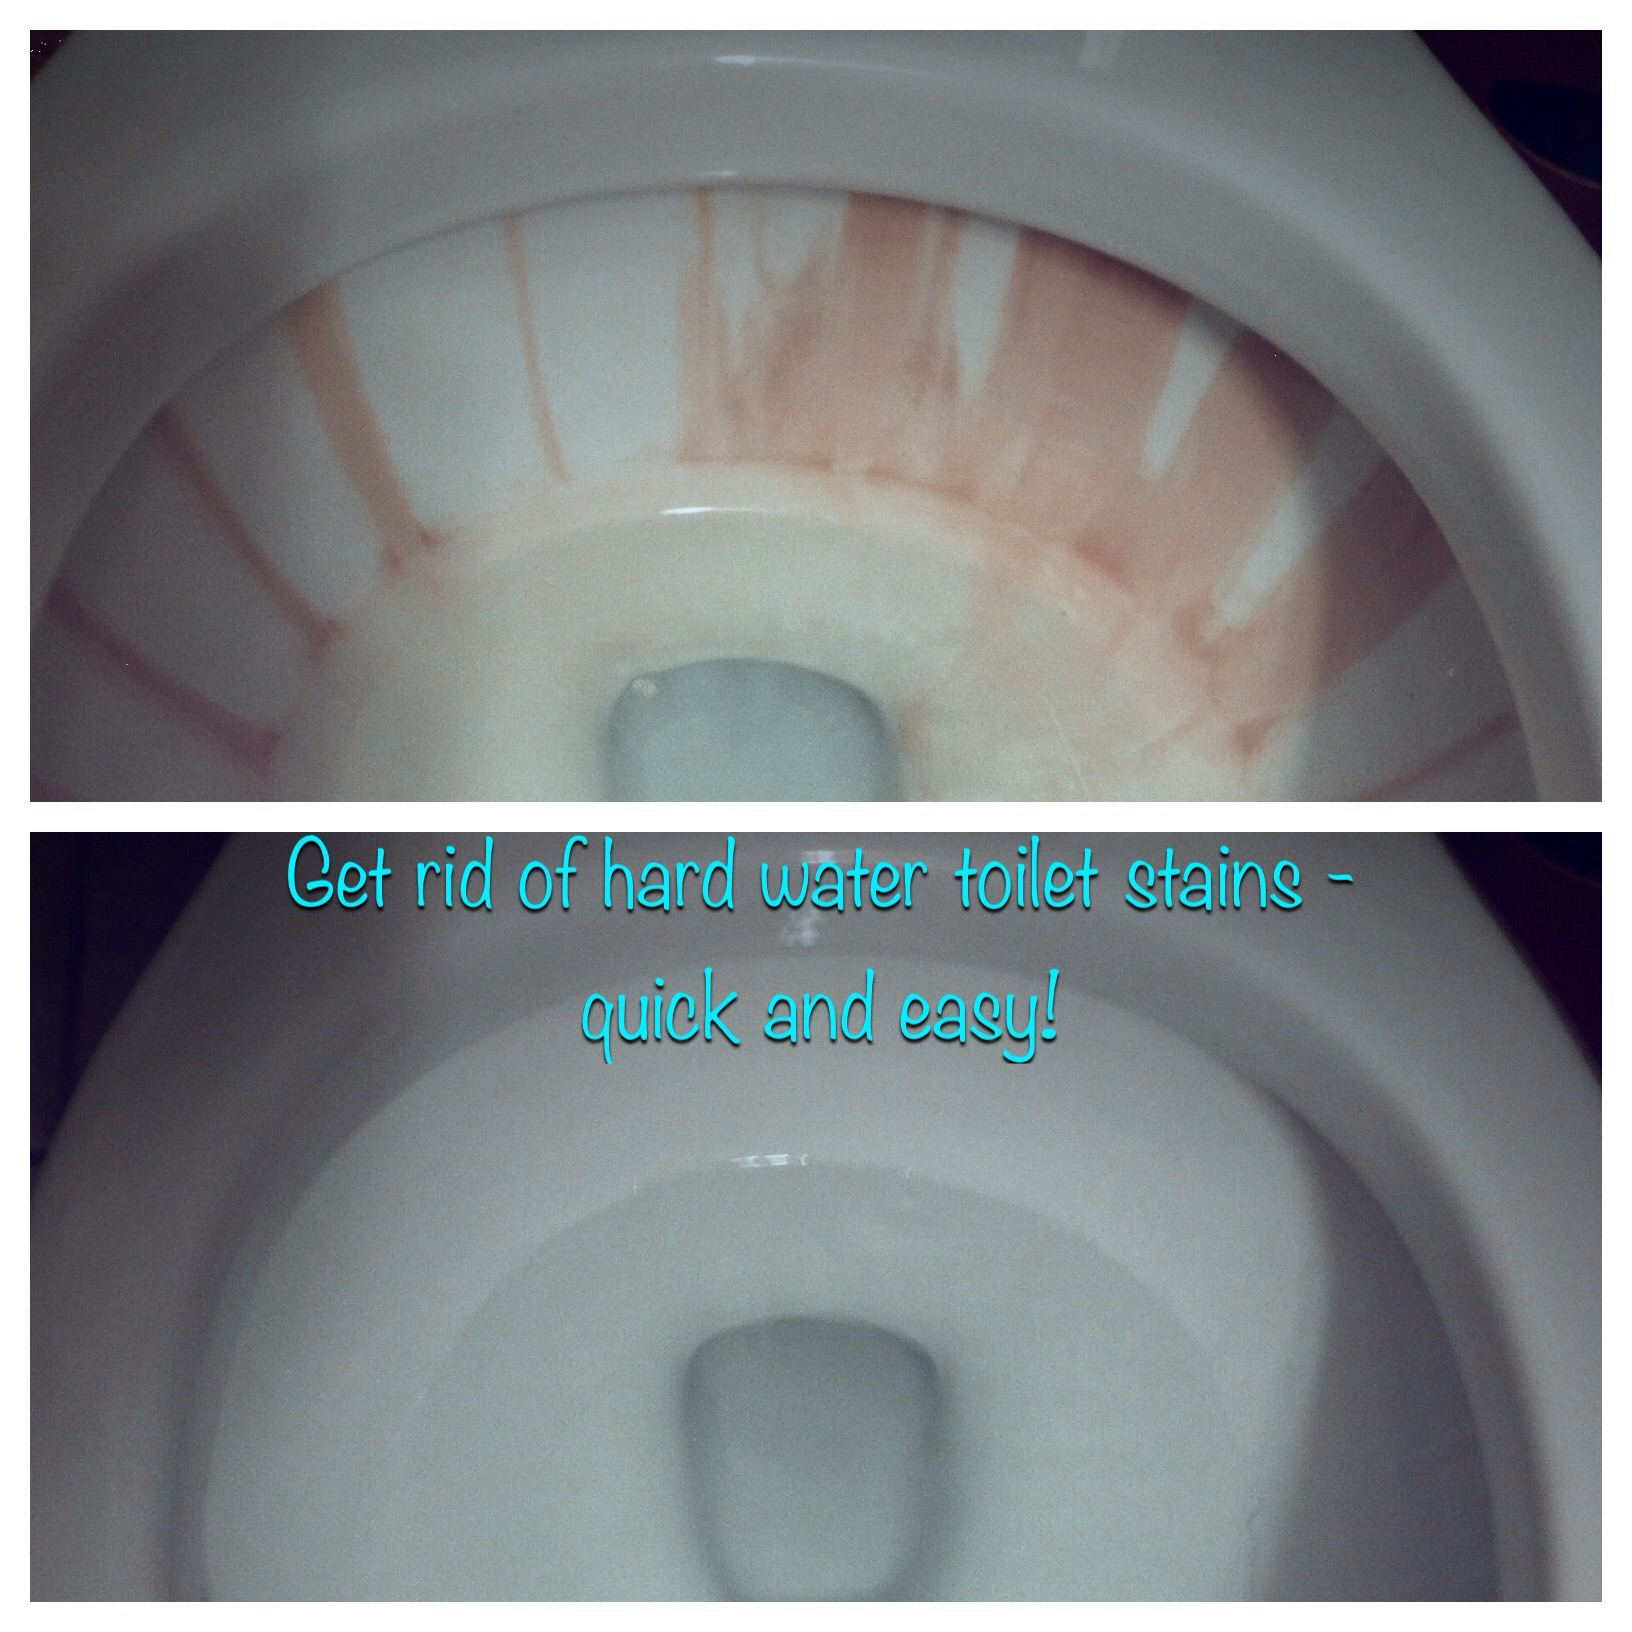 Get rid of hard water toilet stains - quick and easy! -